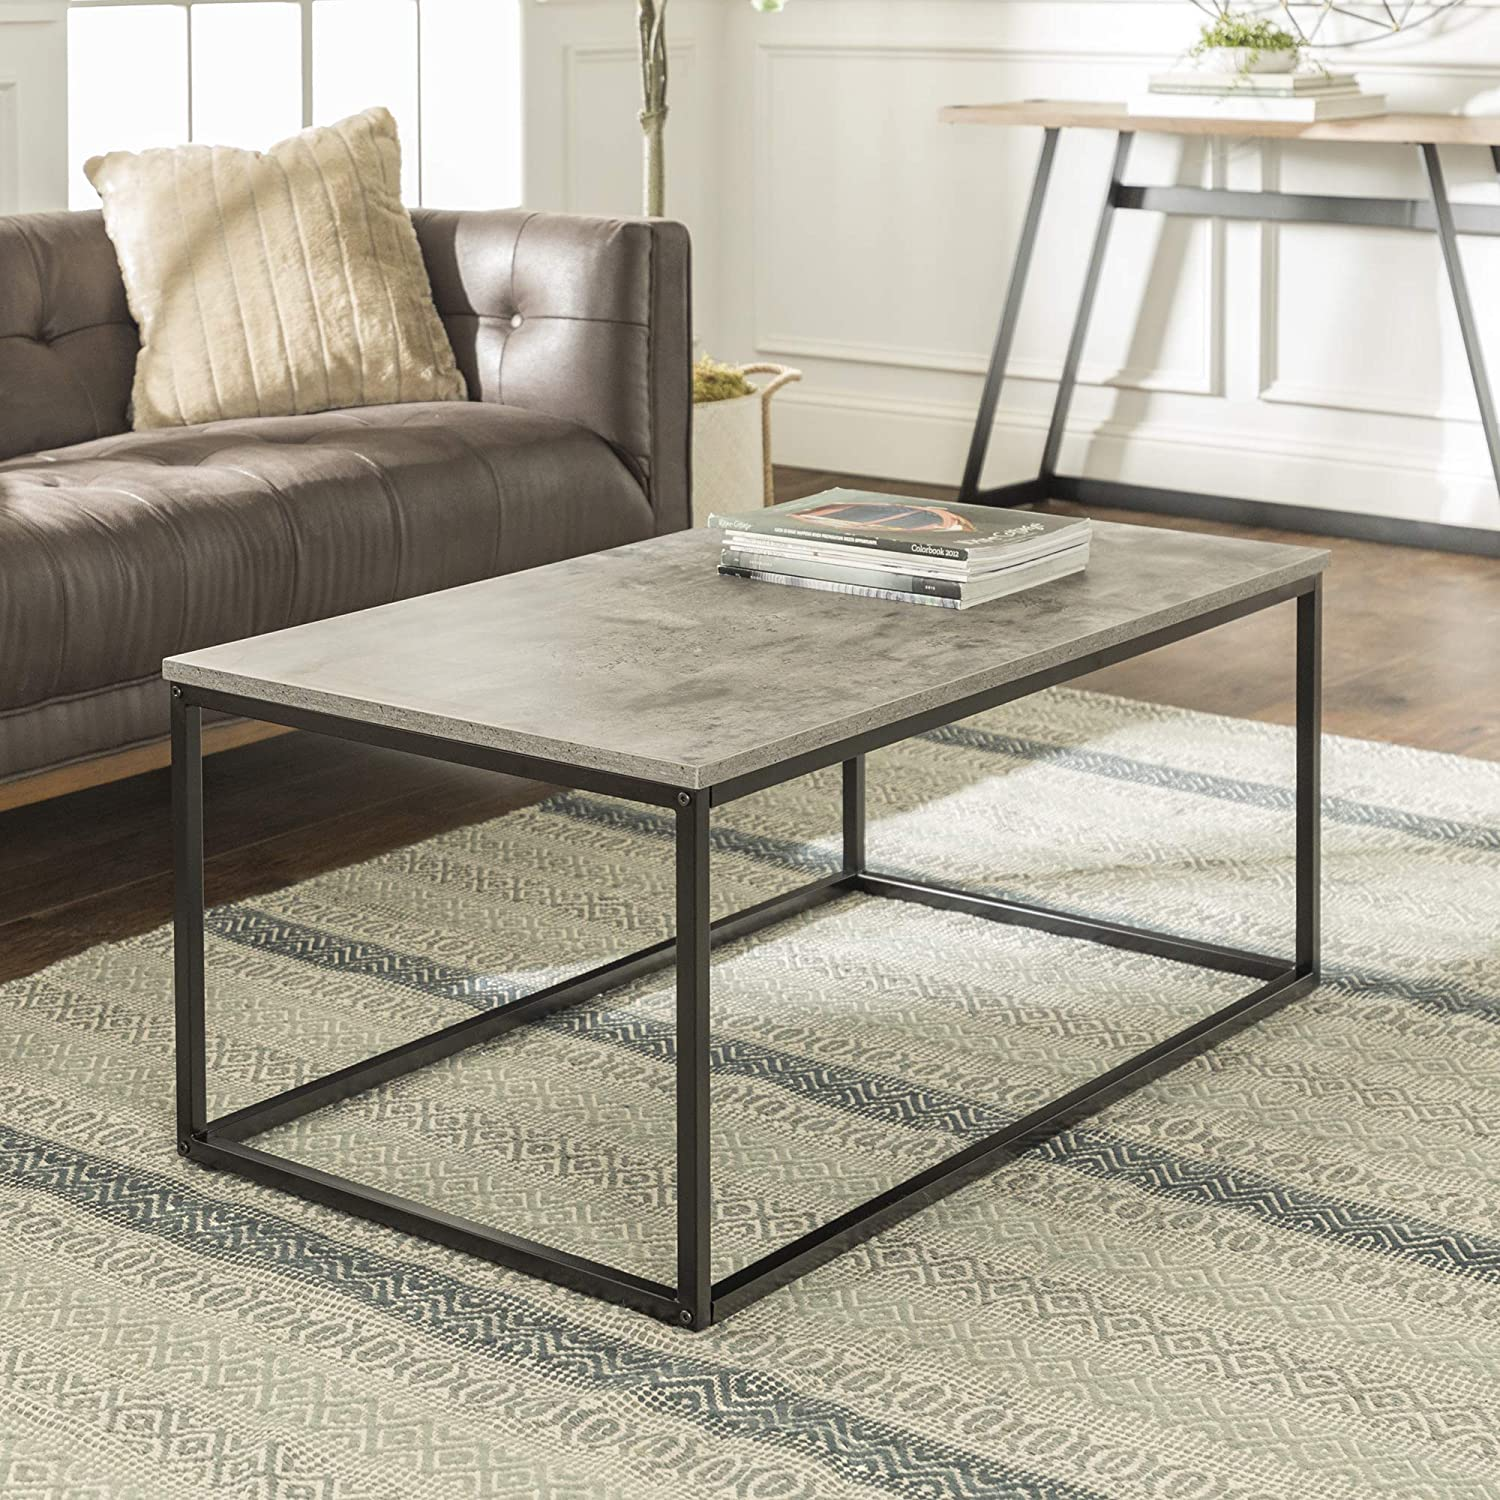 Walker Edison Modern Metal Frame Open Rectangle Coffee Accent Living Room Ottoman End Table, 42 Inch, Dark Concrete